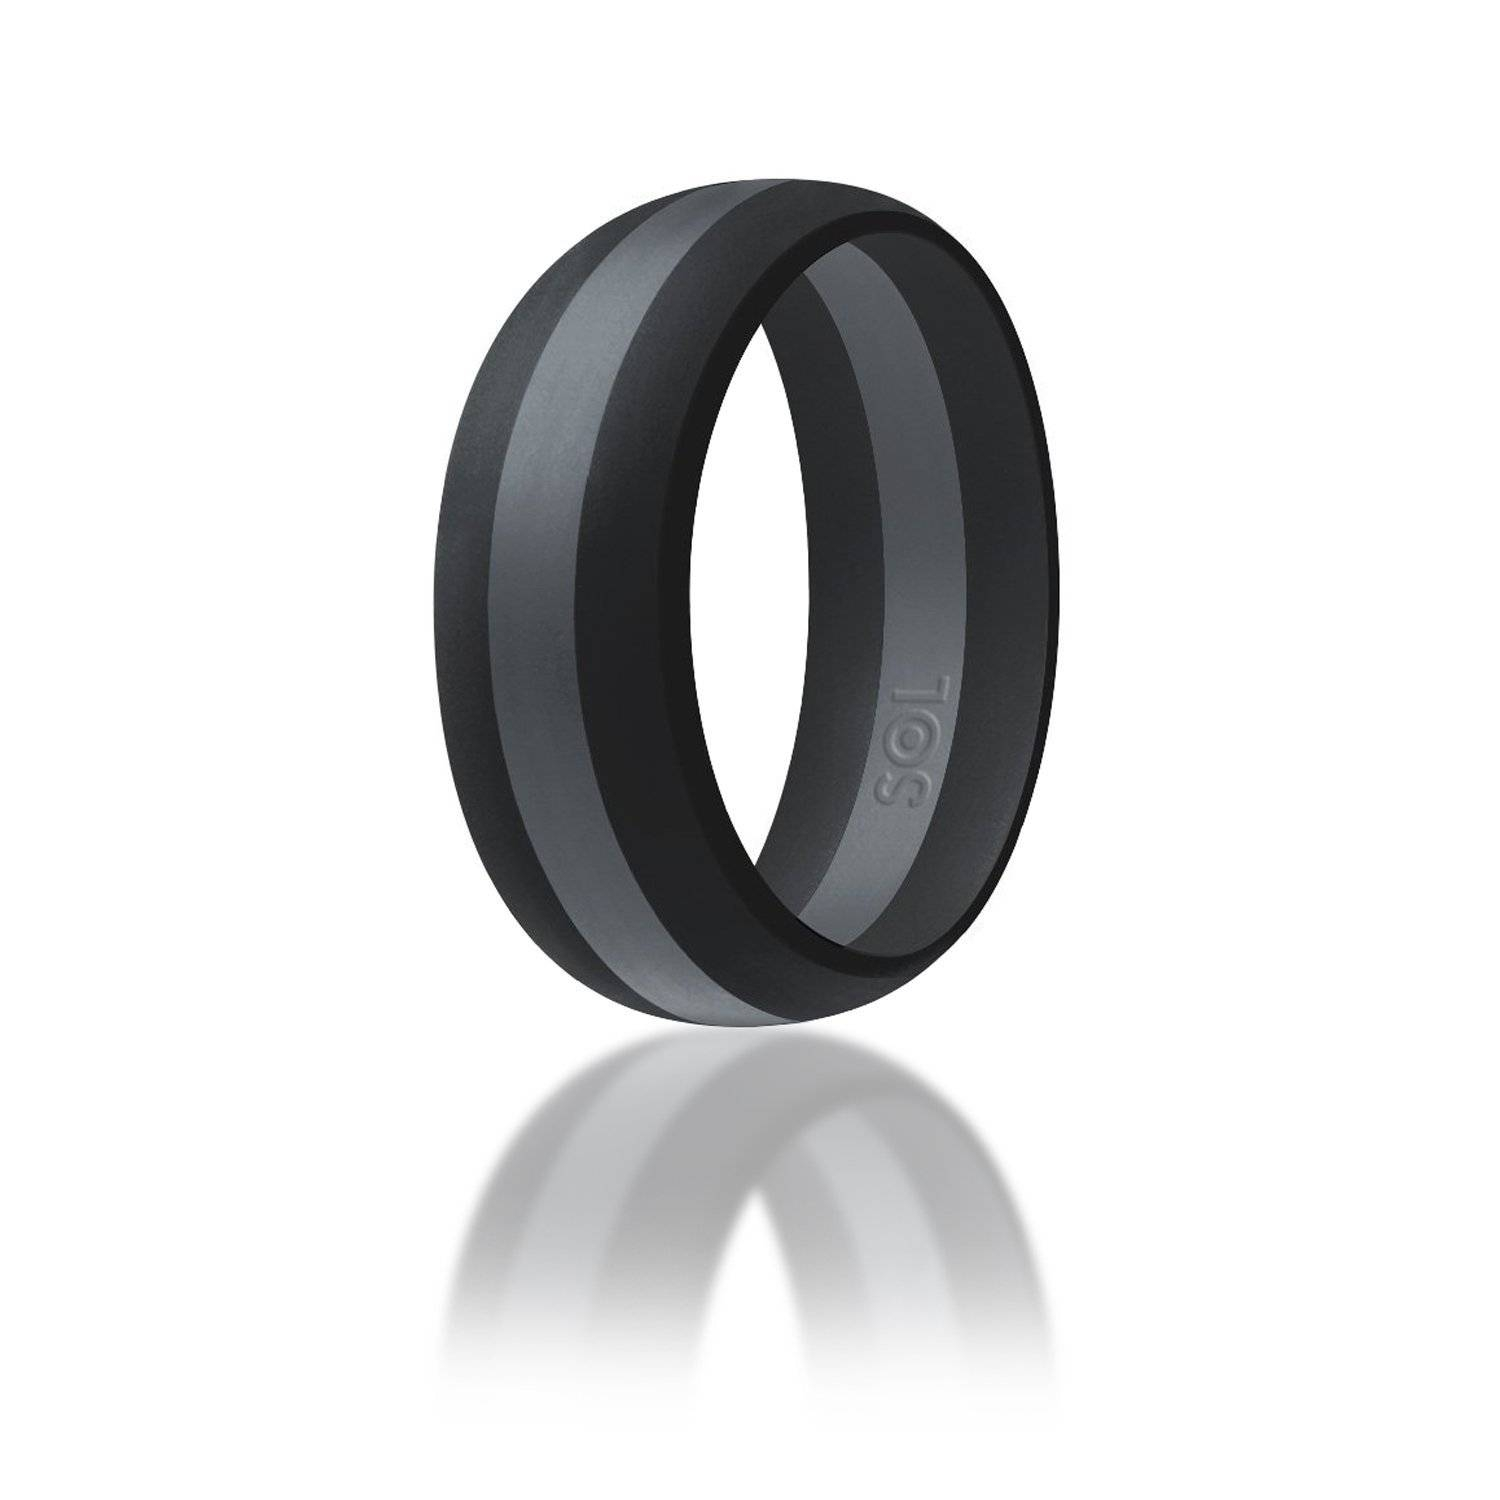 15 Best Collection Of Rubber Bands Wedding Bands